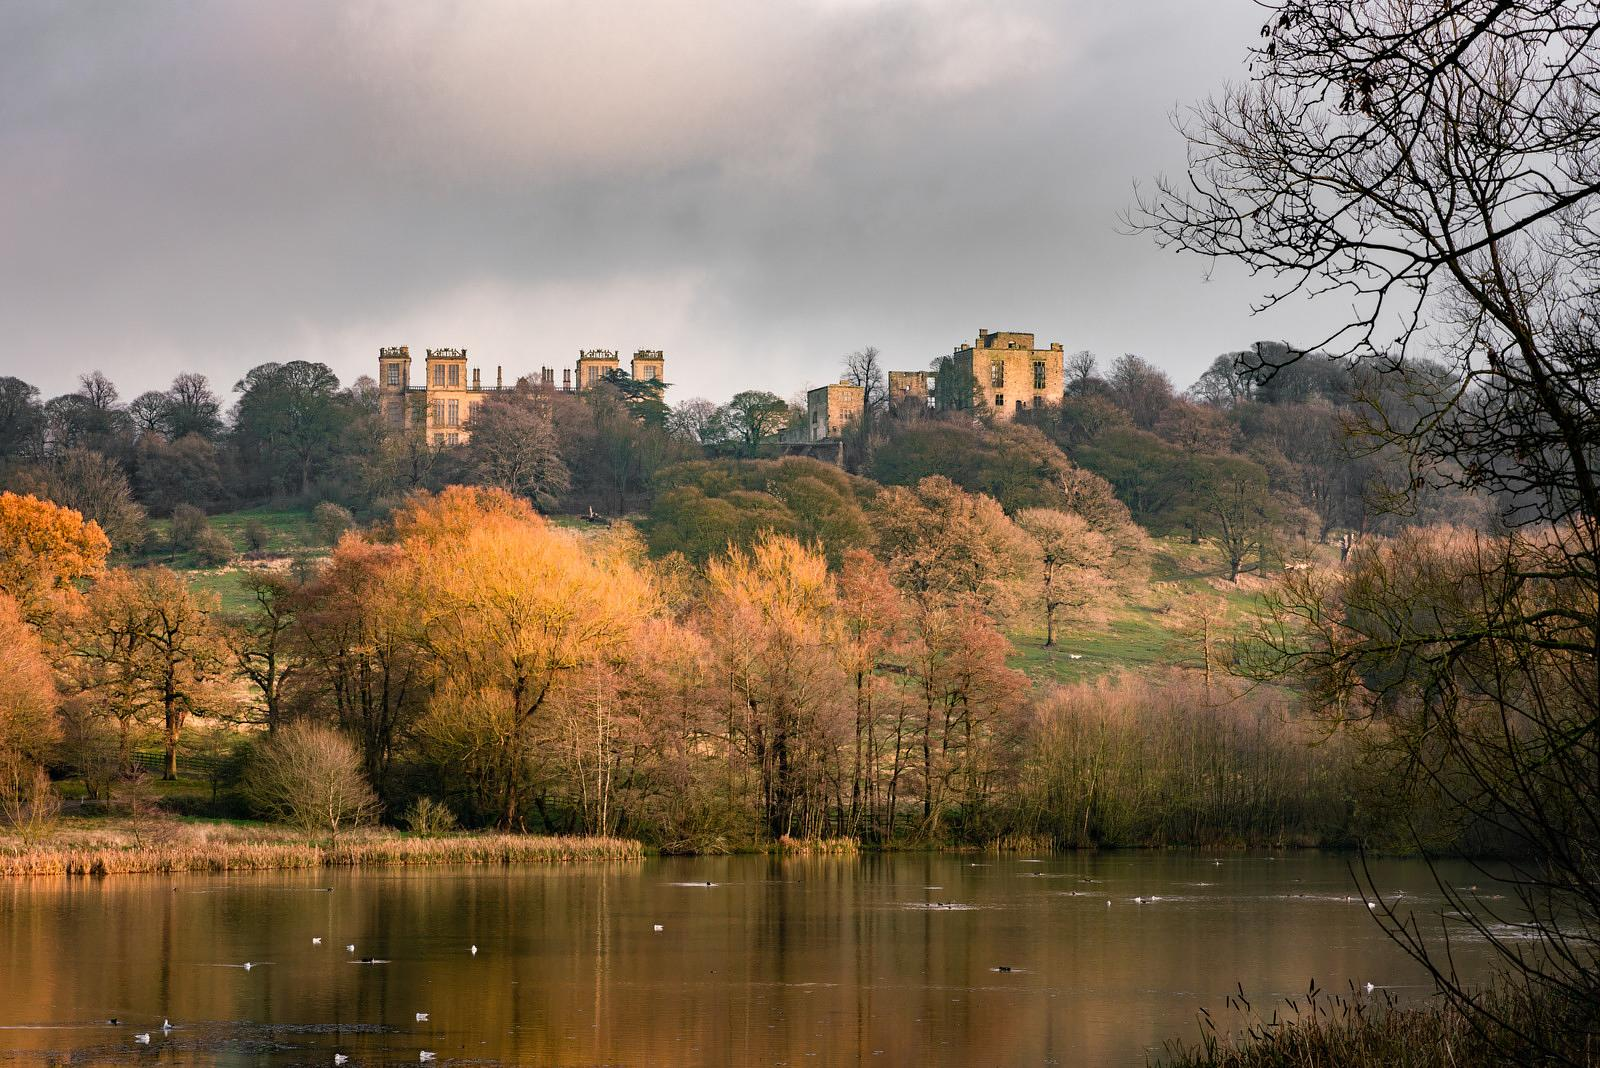 December sunset at Hardwick Hall